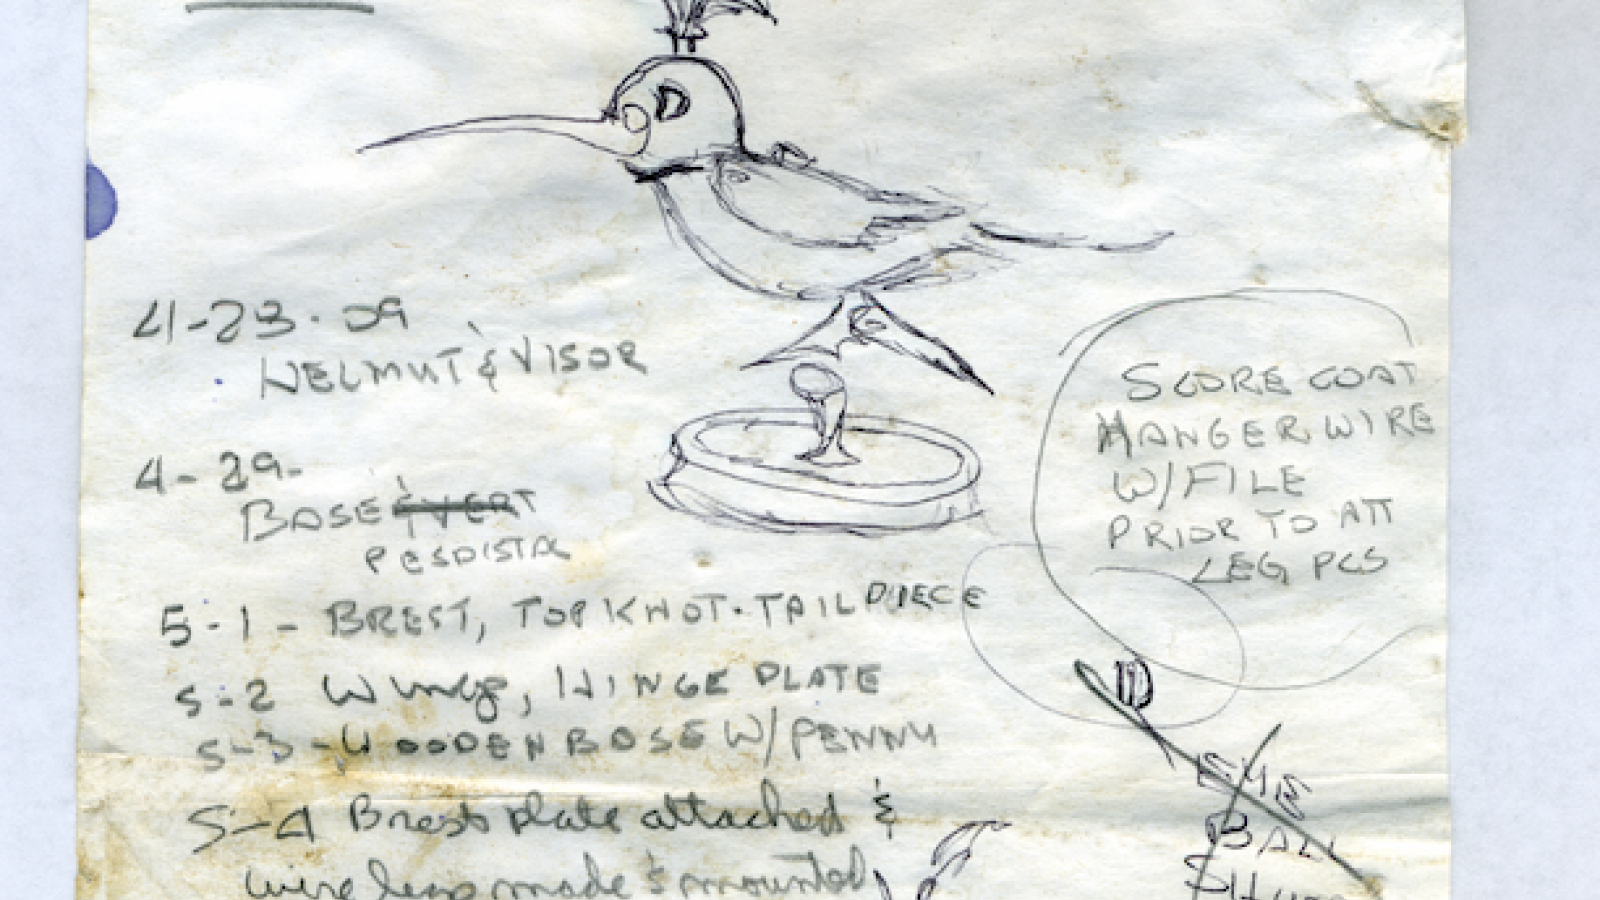 Sketch notes for Armored Hummingbird